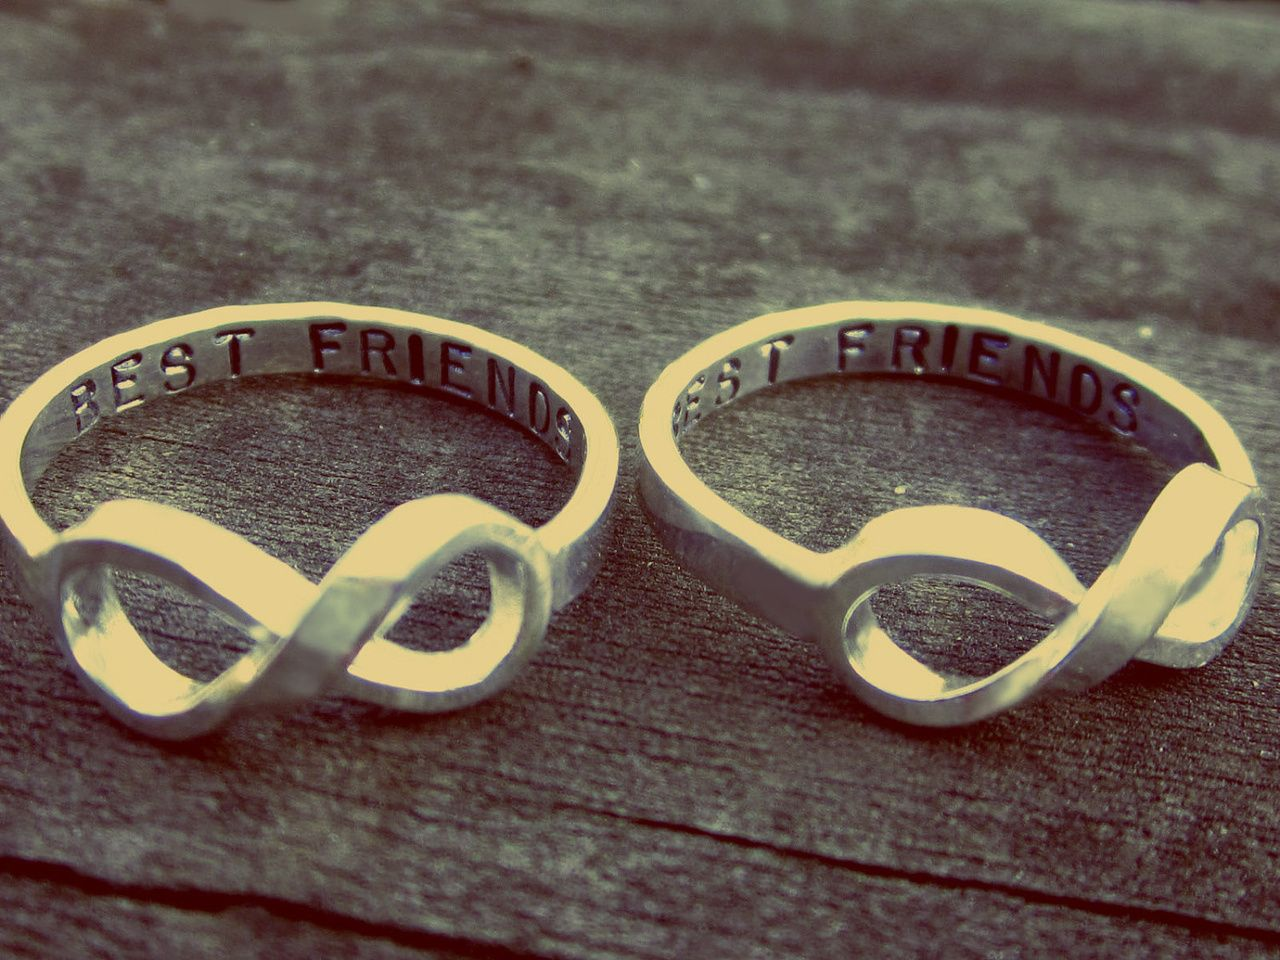 Best friend infinity rings! Love this.